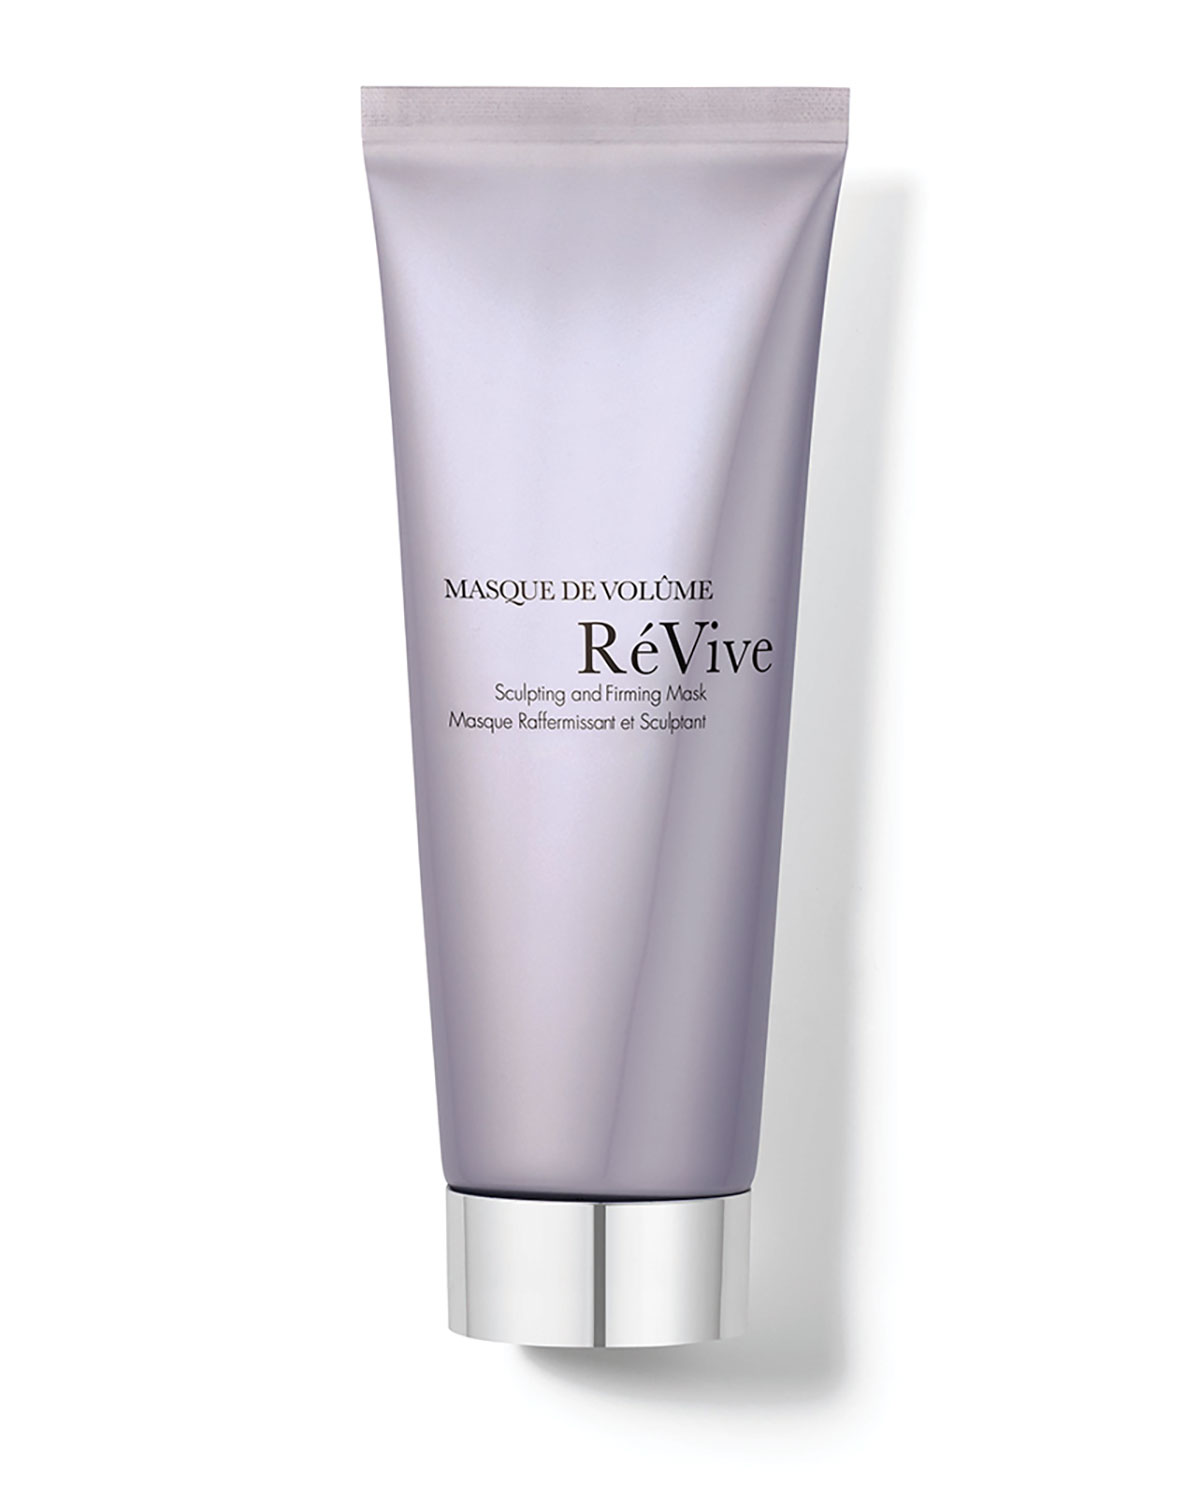 ReVive 2.5 oz. Masque de Volume Sculpting and Firming Mask